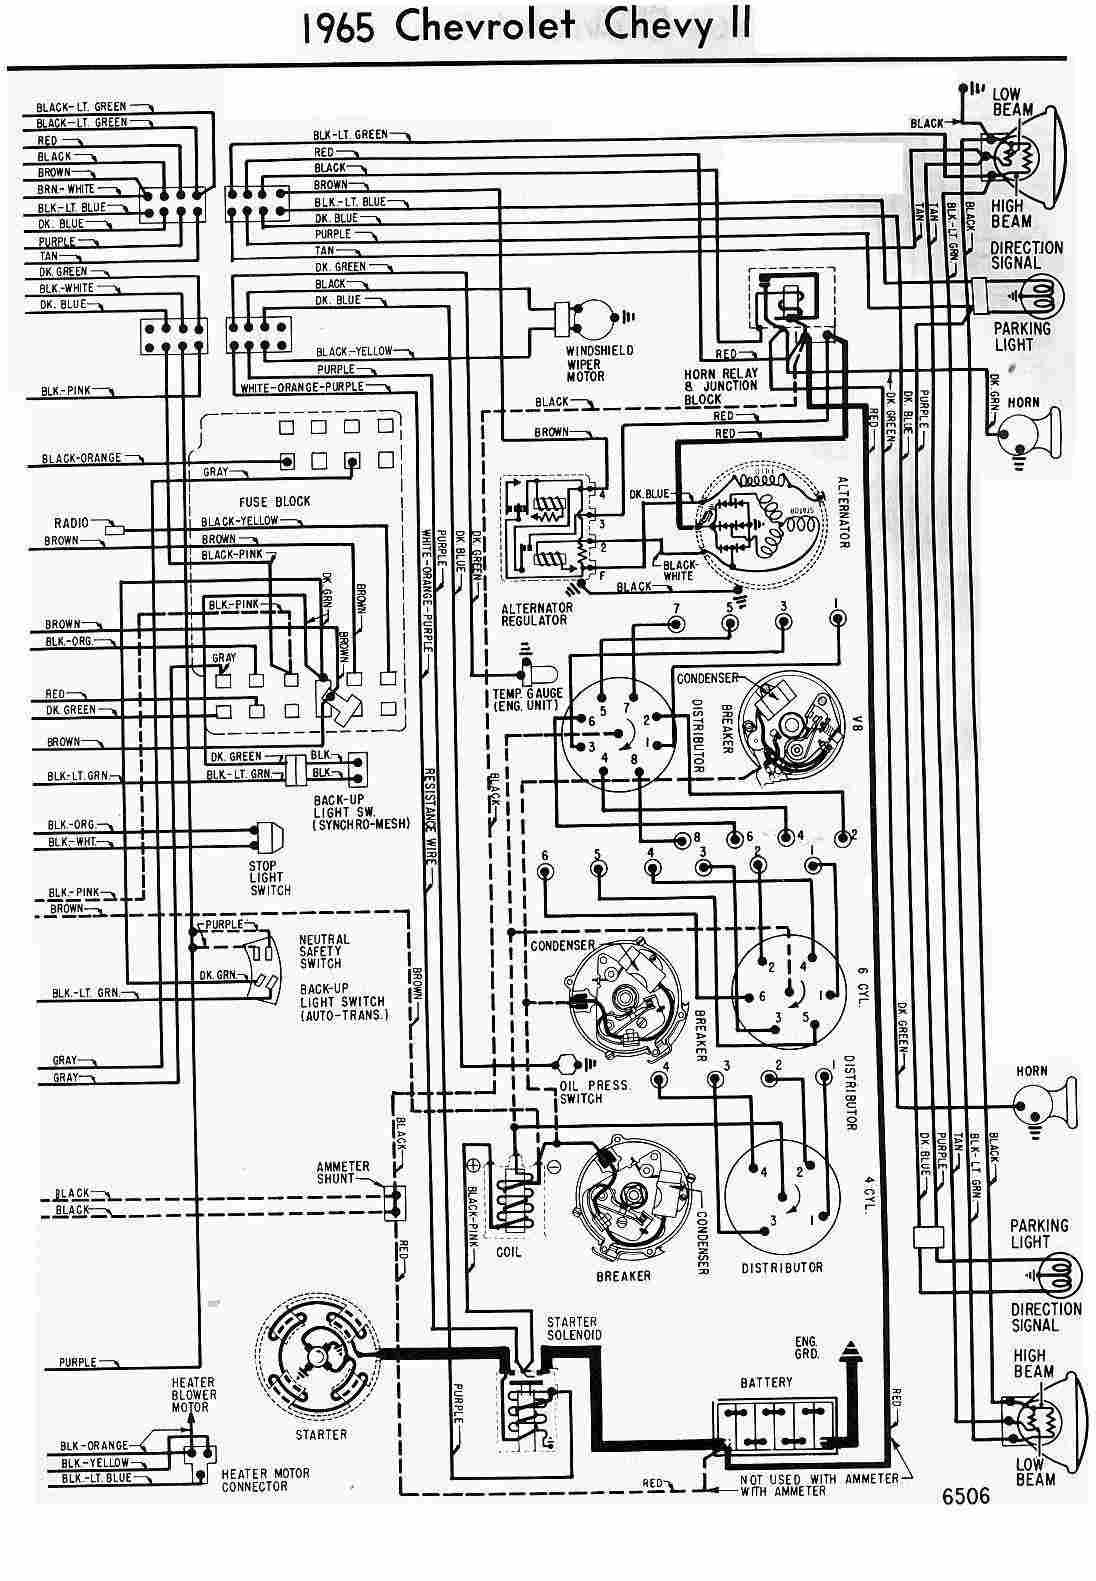 1965 Chevy Nova Headlight Wiring Diagram 1971 65 Manual E Books1965 Simple